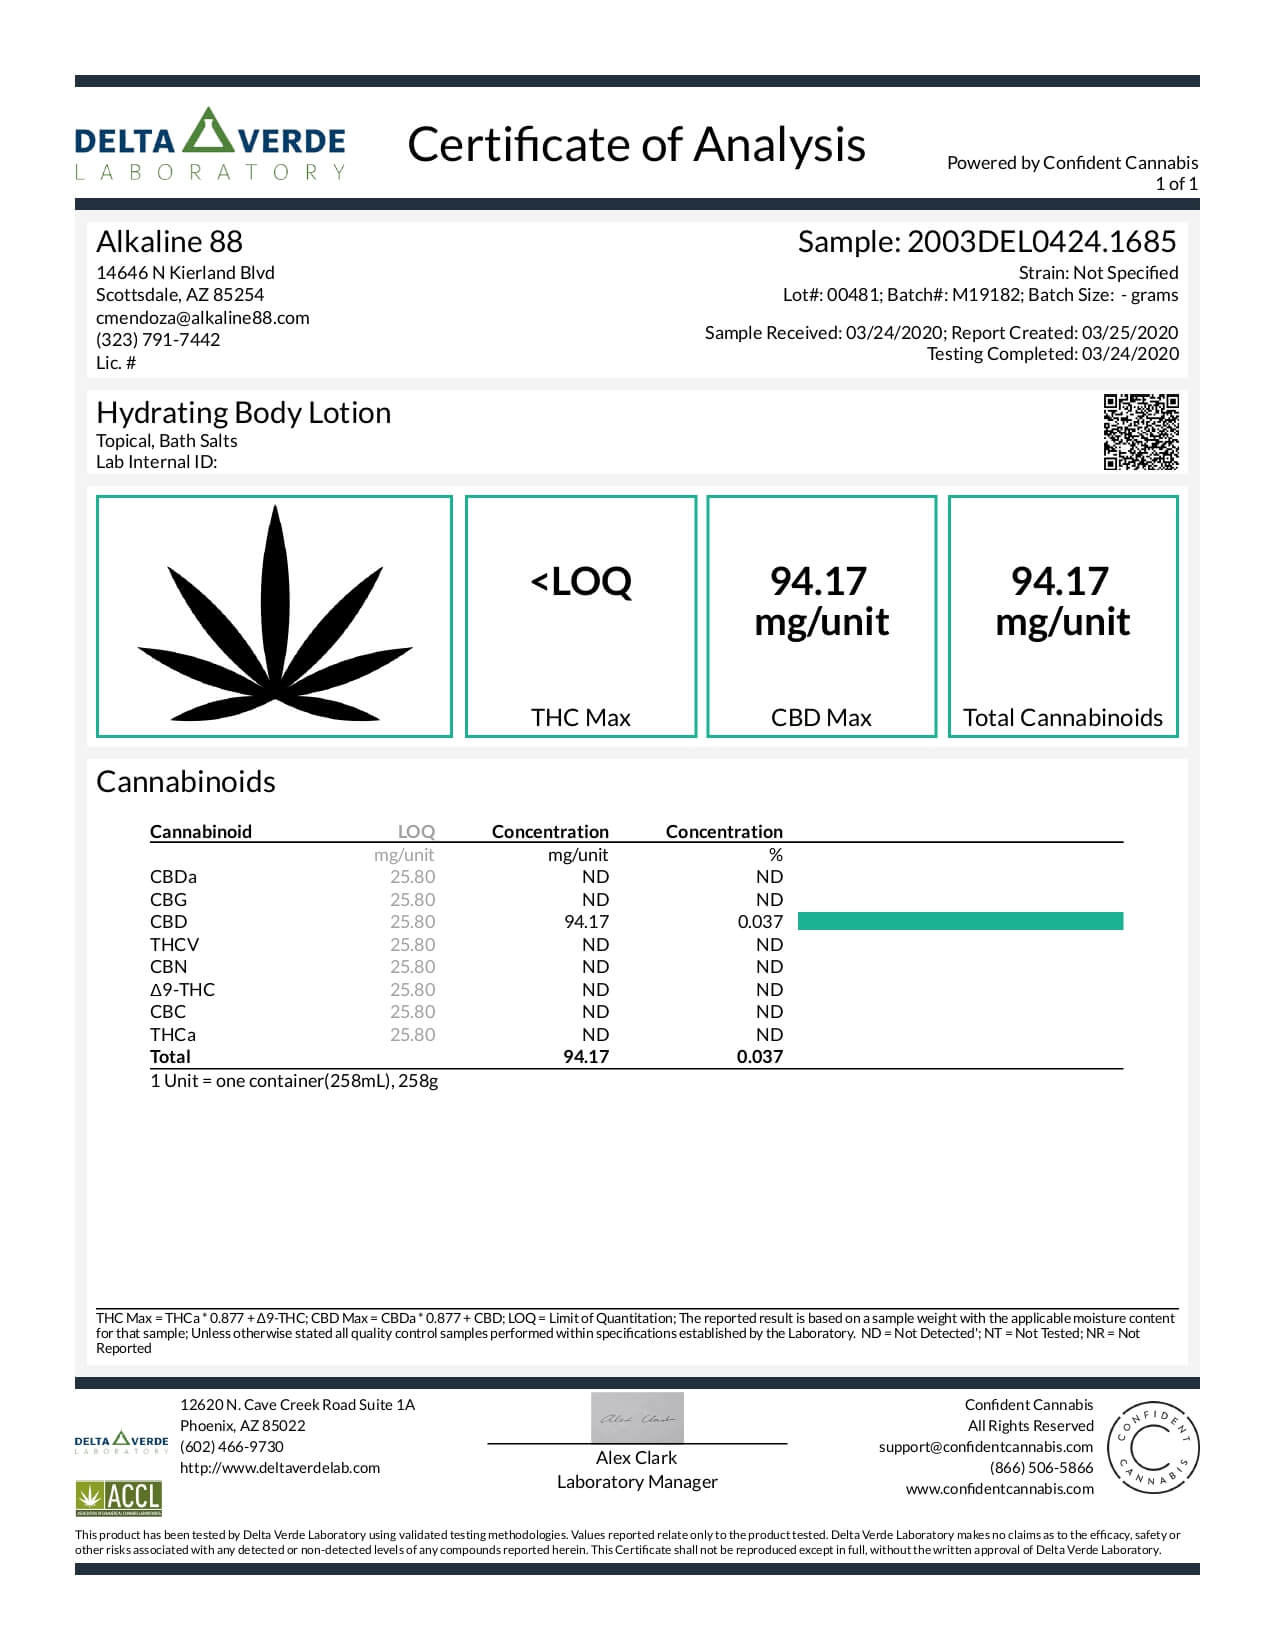 A88 CBD Topical Full Spectrum Hydrating Body Lotion Lab Report